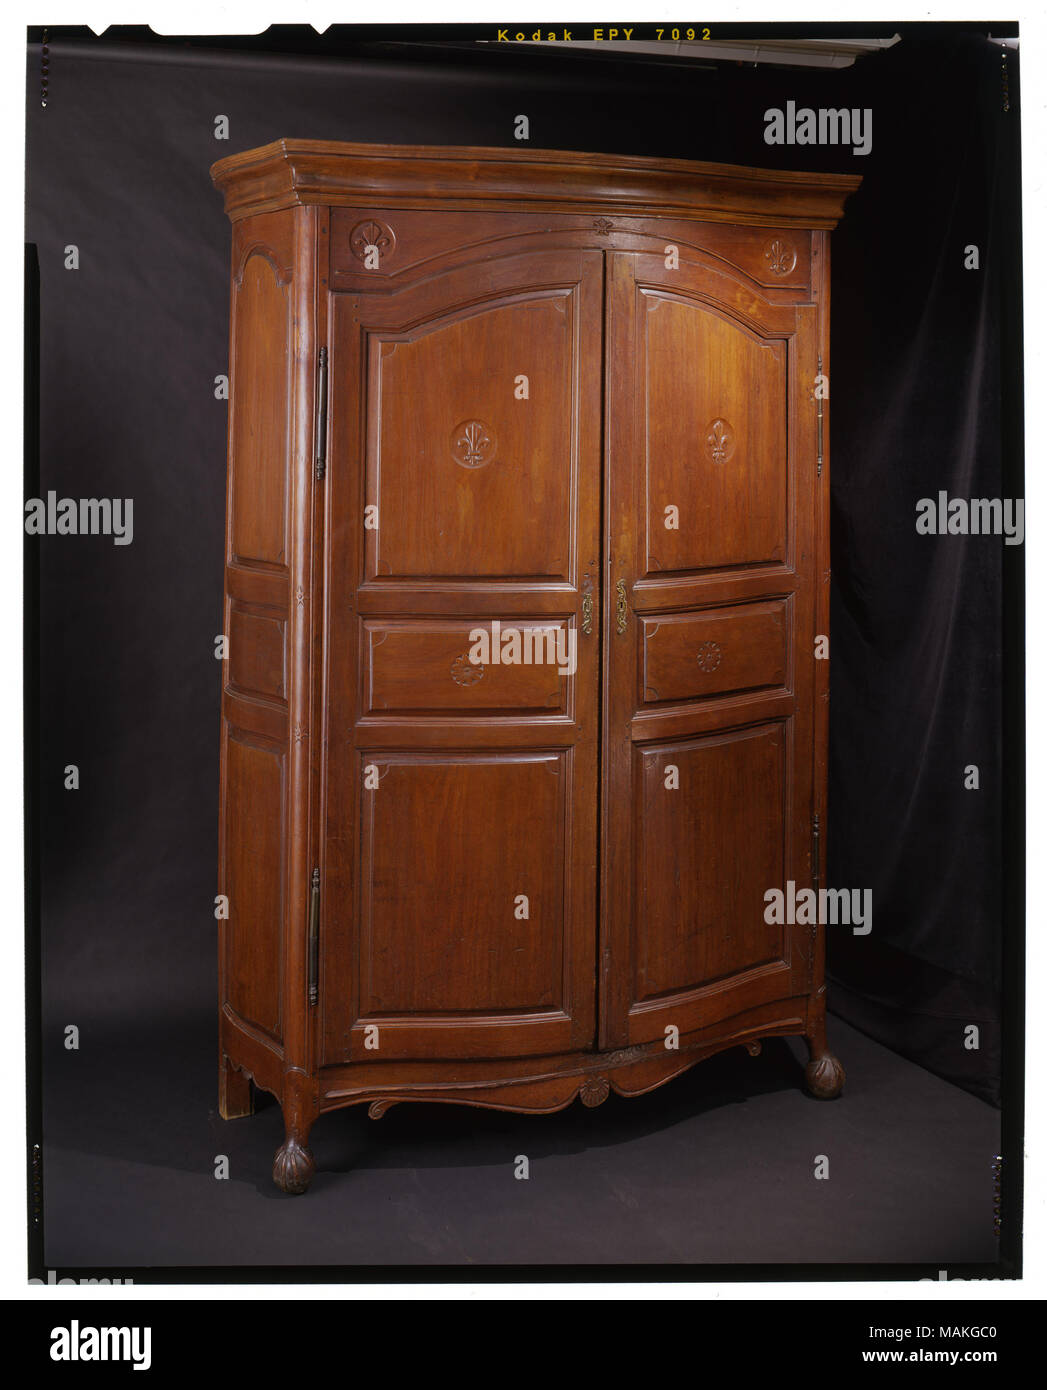 louis xv furniture stock photos louis xv furniture stock. Black Bedroom Furniture Sets. Home Design Ideas